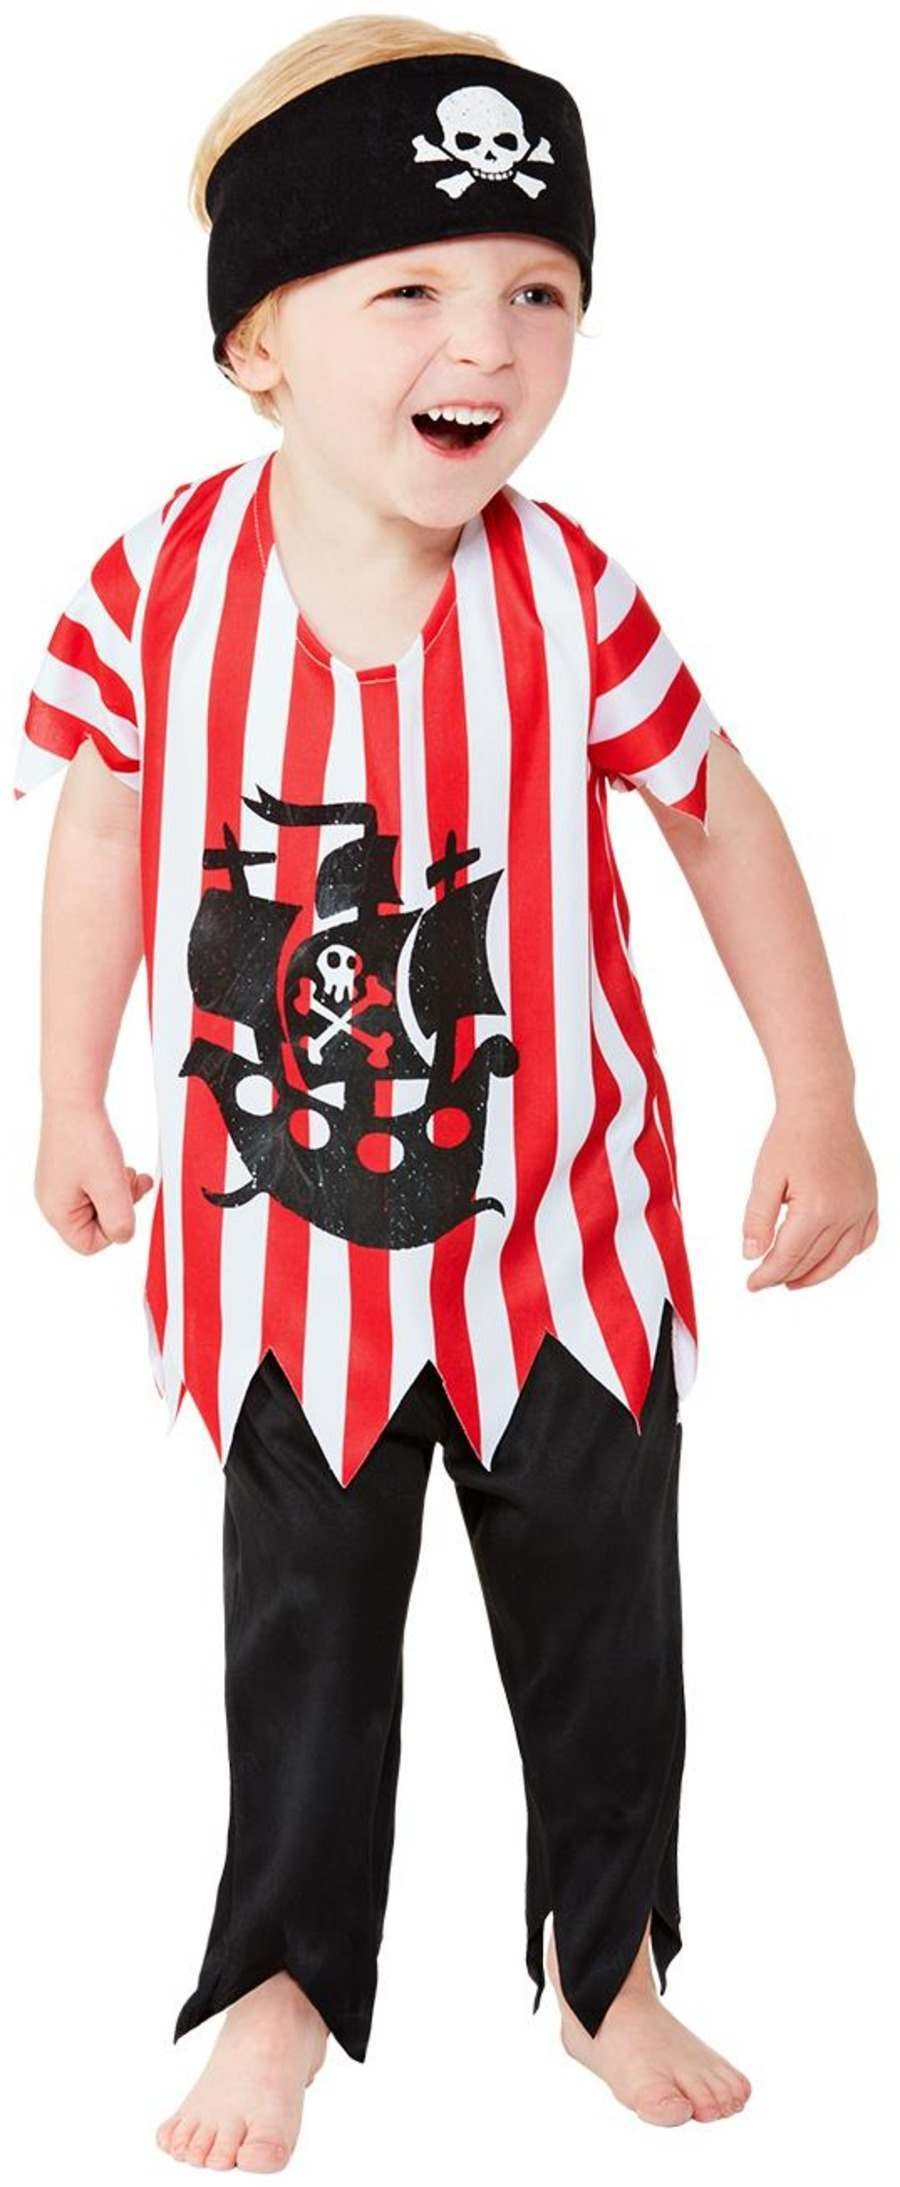 Toddler Jolly Pirate Fancy Dress Costume